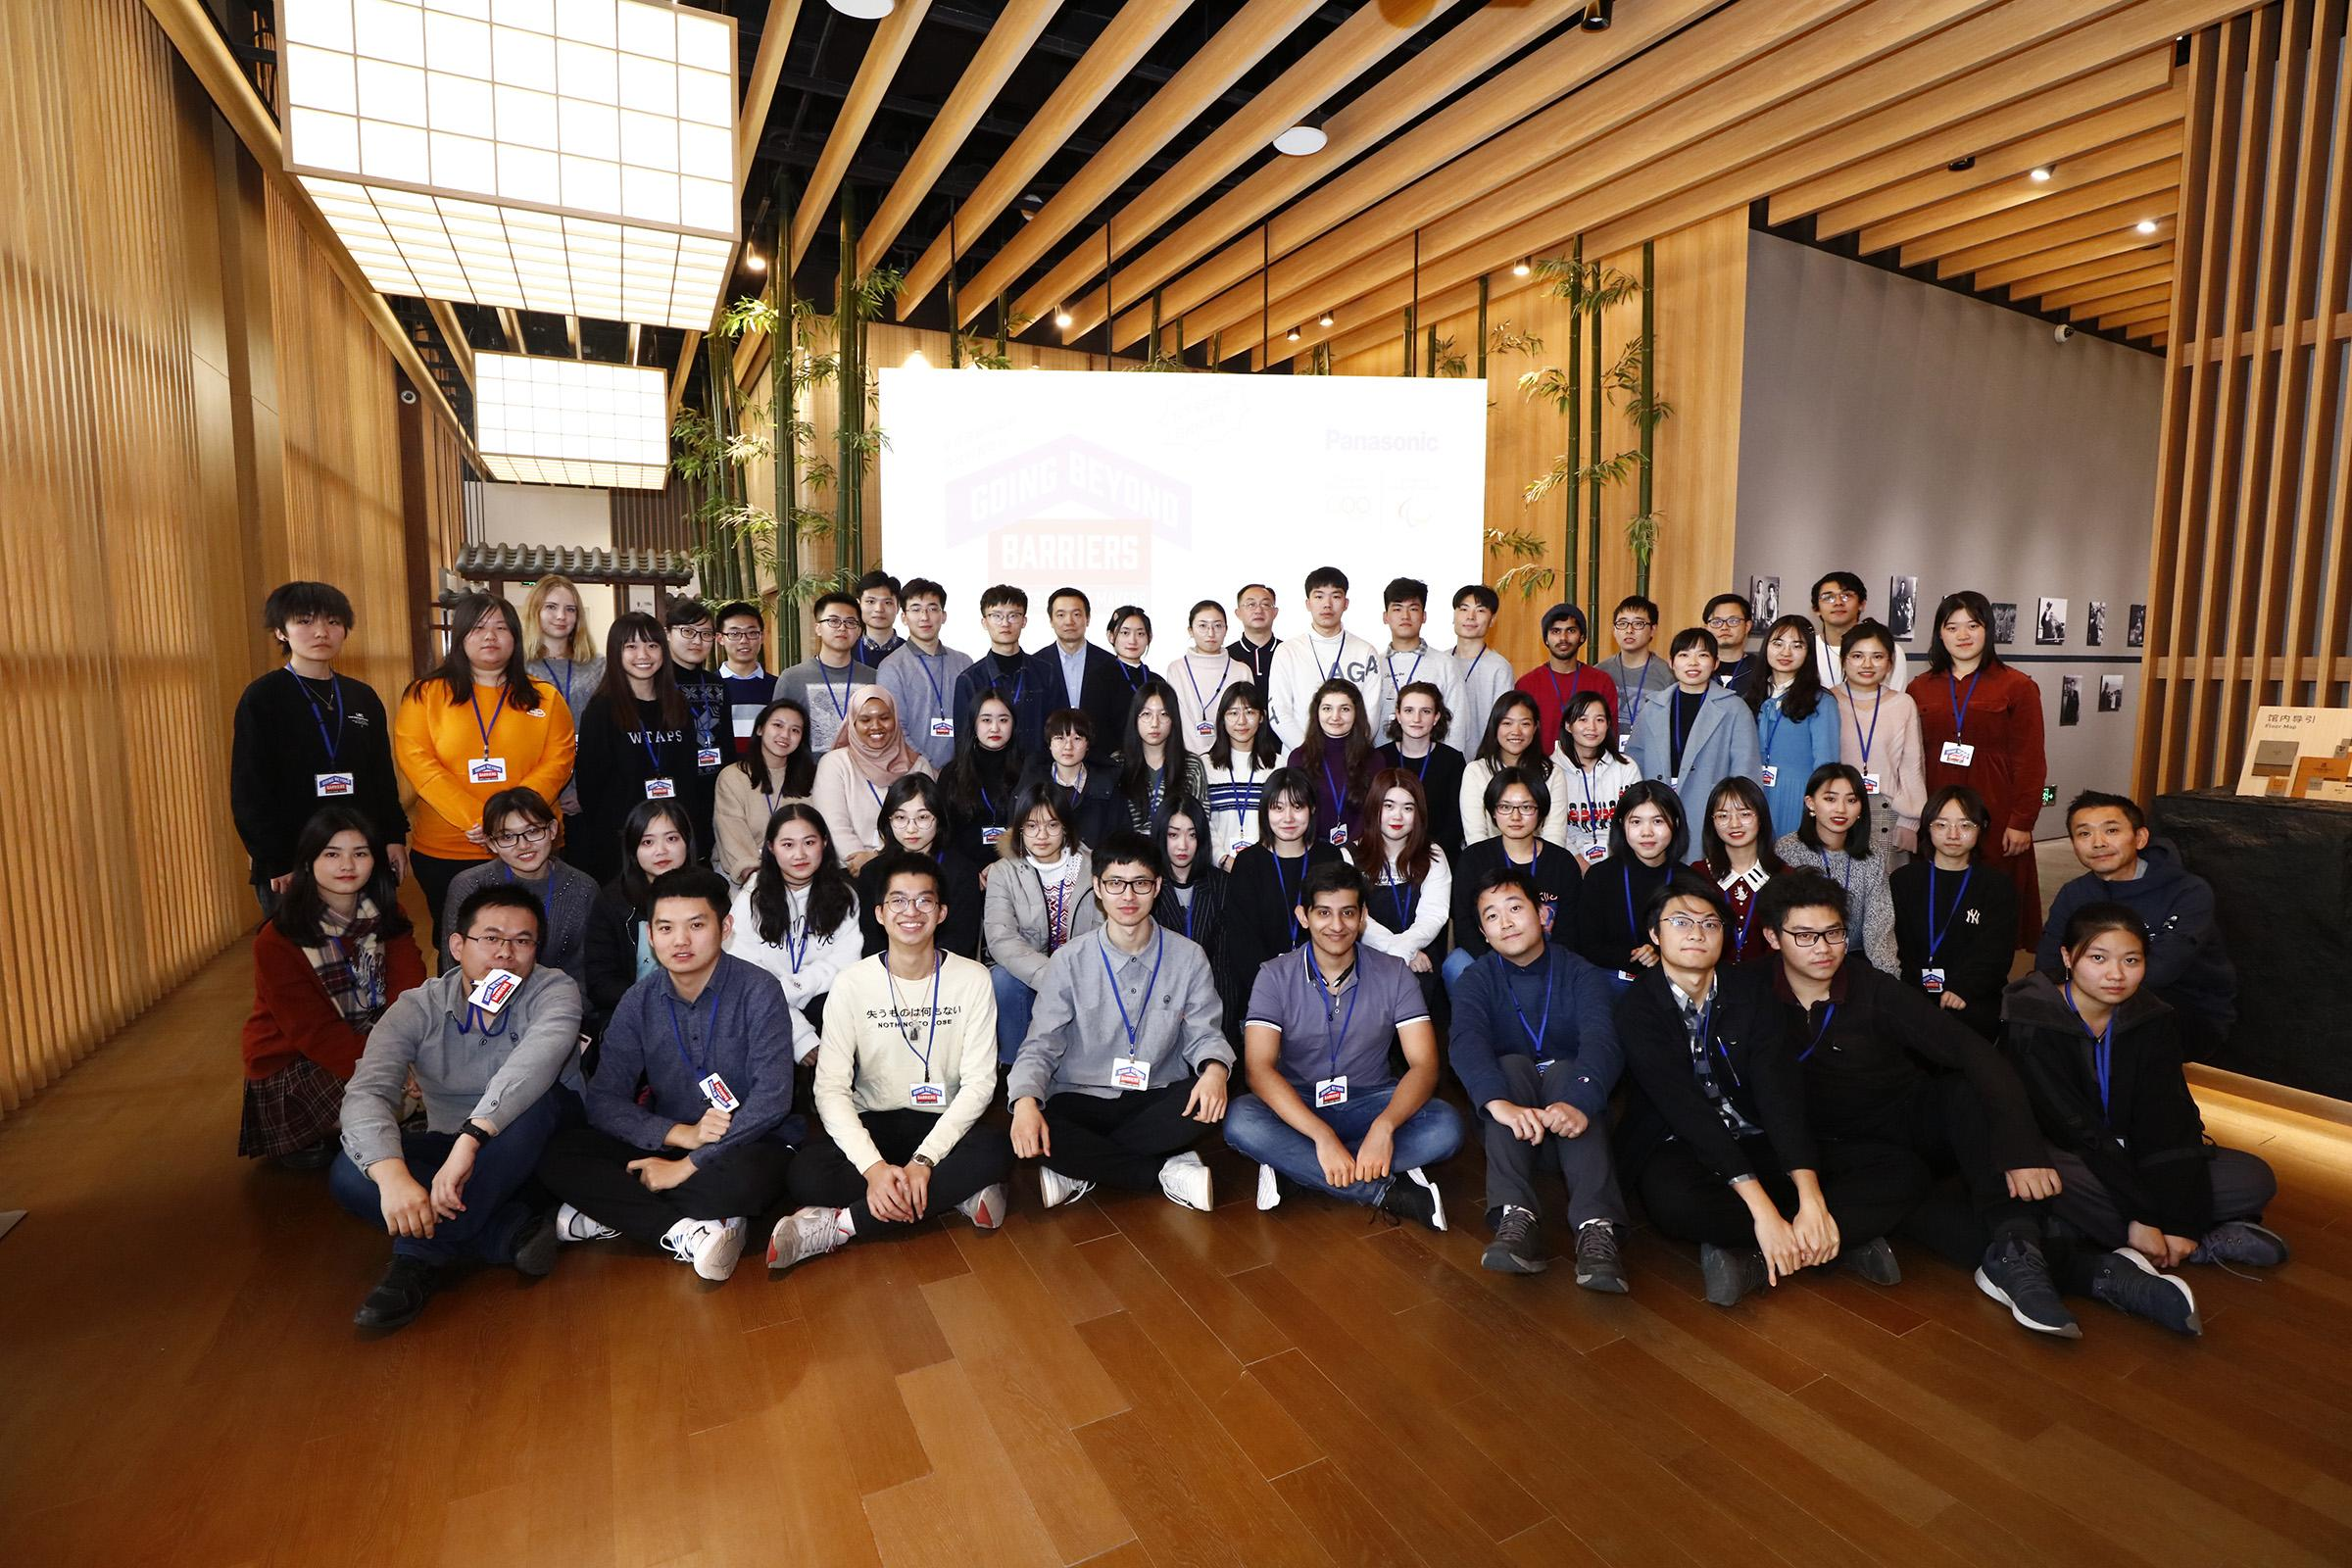 Photo: Ideathon held in Beijing, Dec 7, 2019